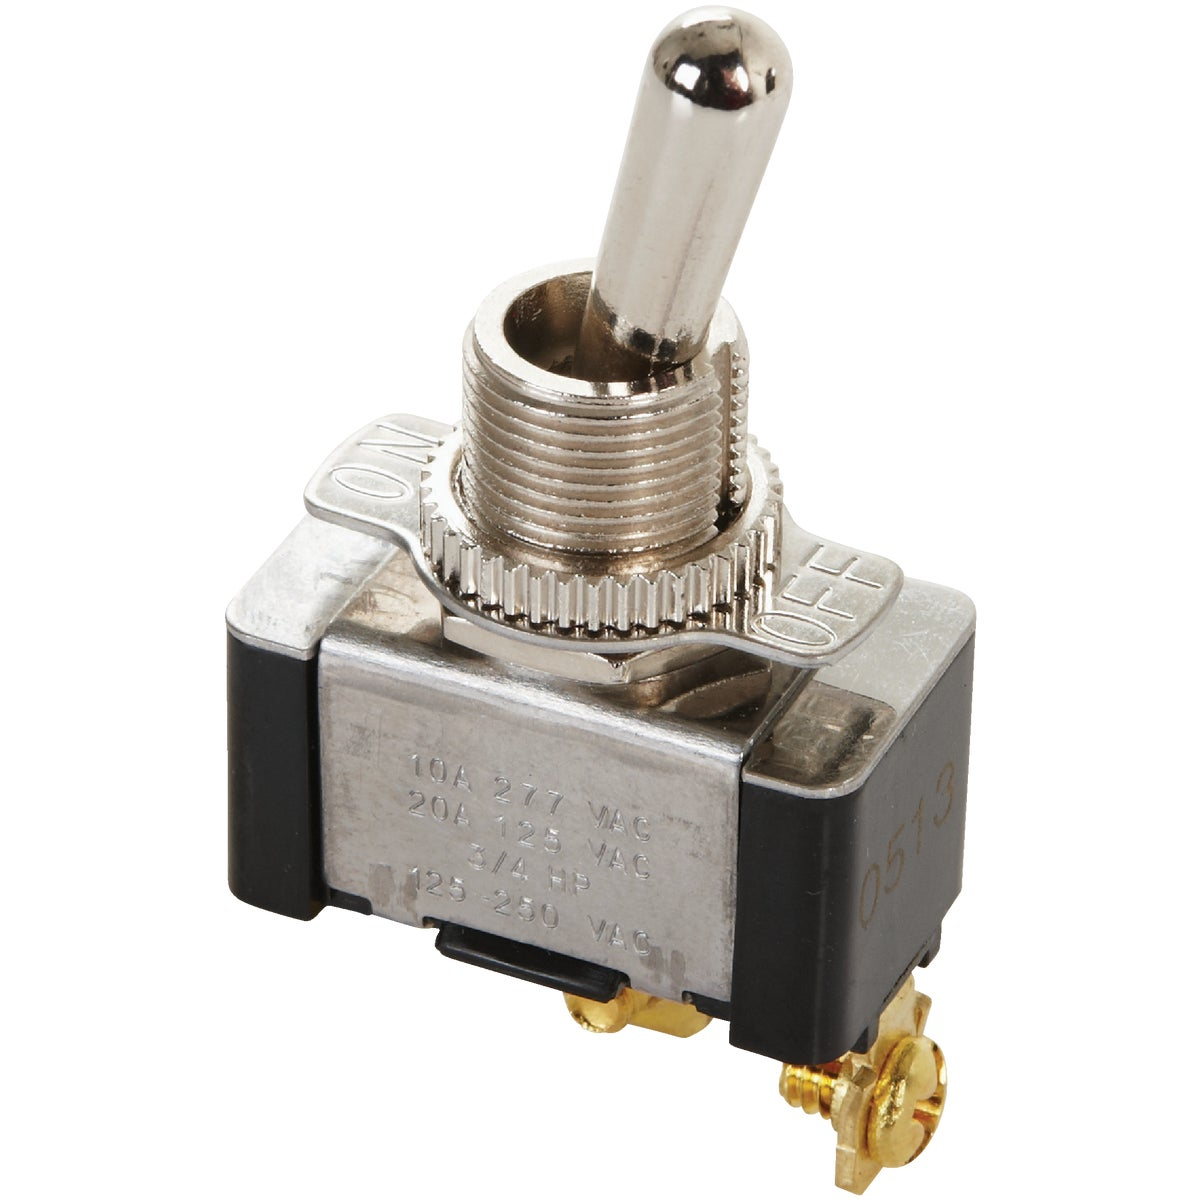 HEAVY DUTY TOGGLE SWITCH - GSW-11 by G B Electrical Inc